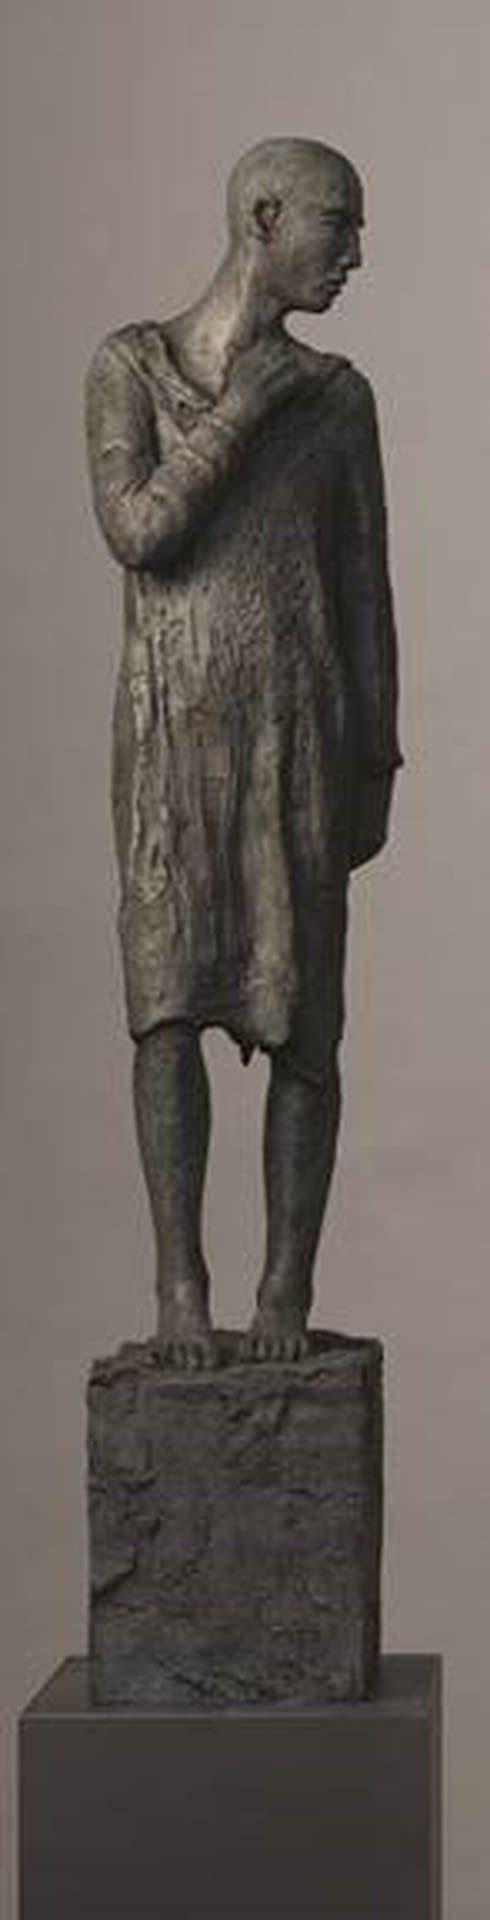 A bronze, androgynous statue looking to its left.